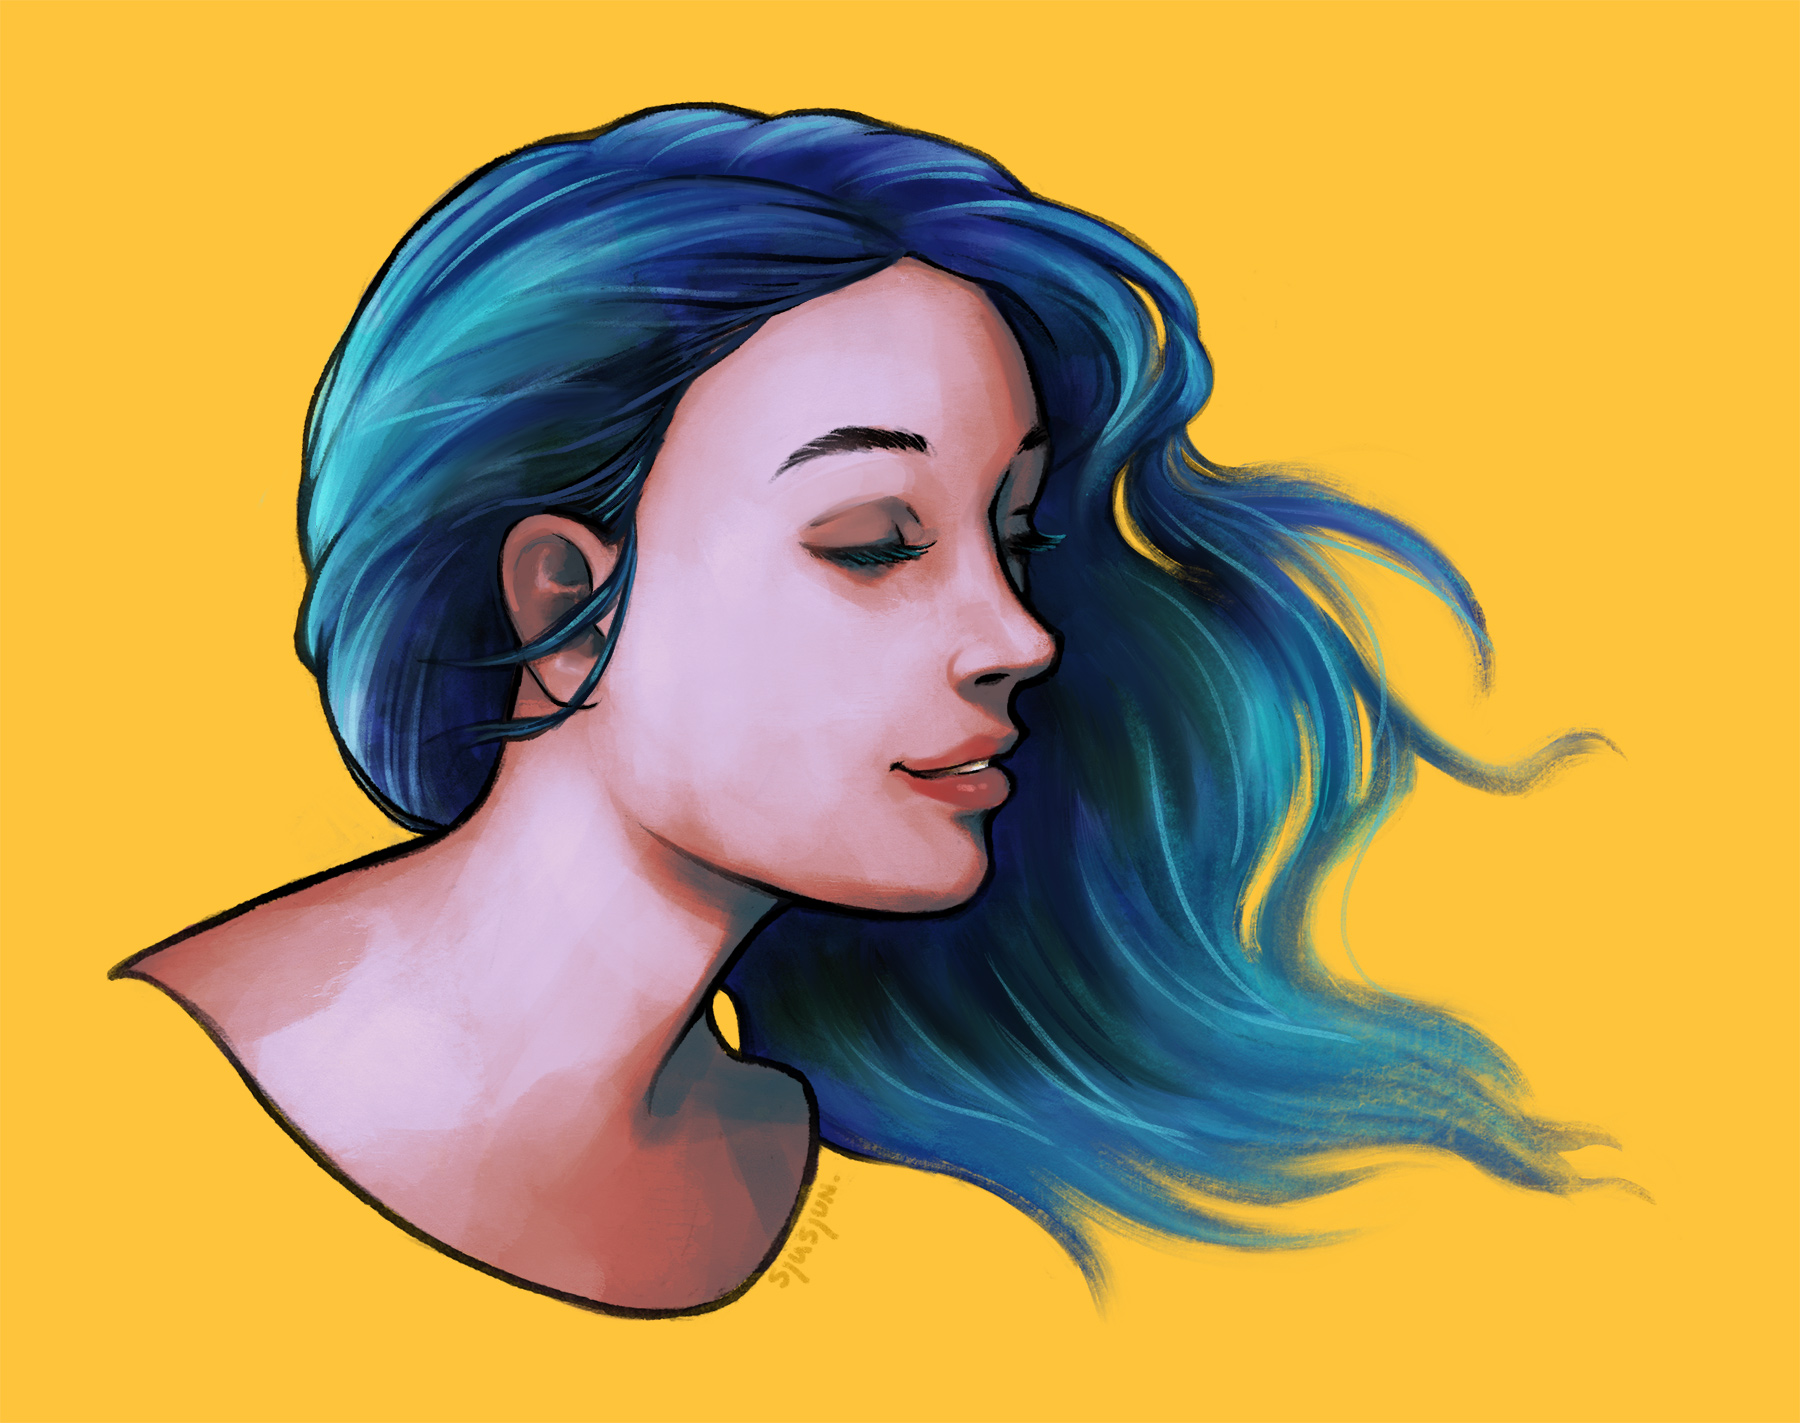 Blue haired girl on yellow background